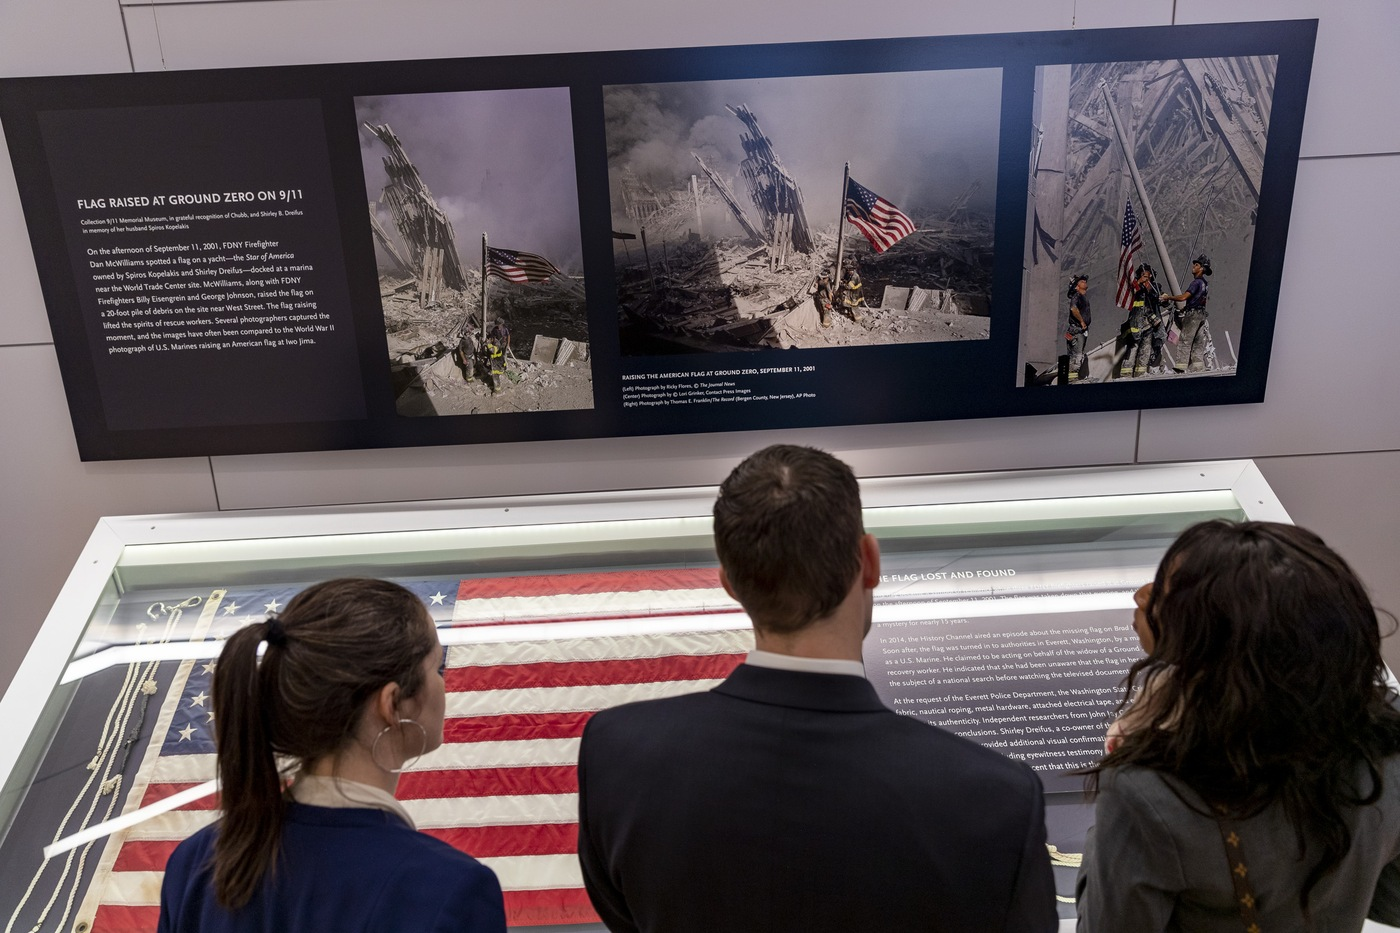 New special agents and intelligence analysts view an exhibit at the 9/11 Memorial & Museum in New York City on Saturday, March 9, 2019.